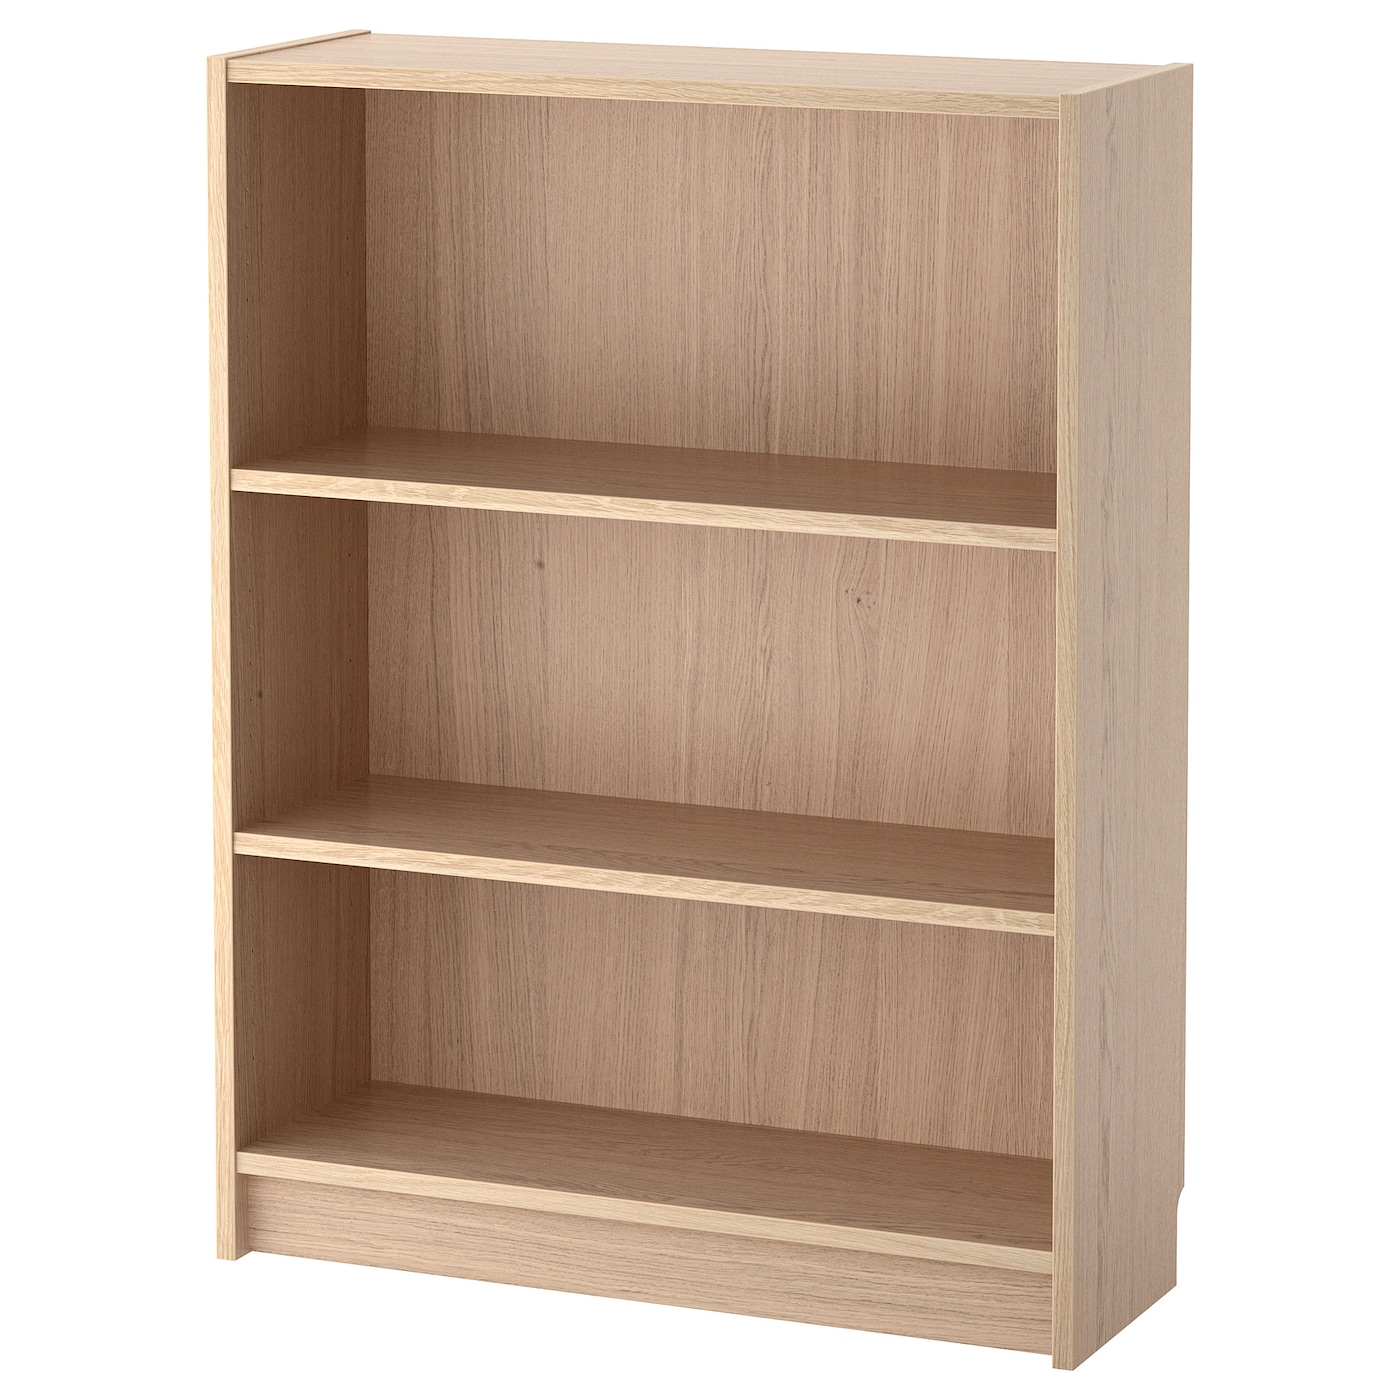 Furniture Shelving Bookcases